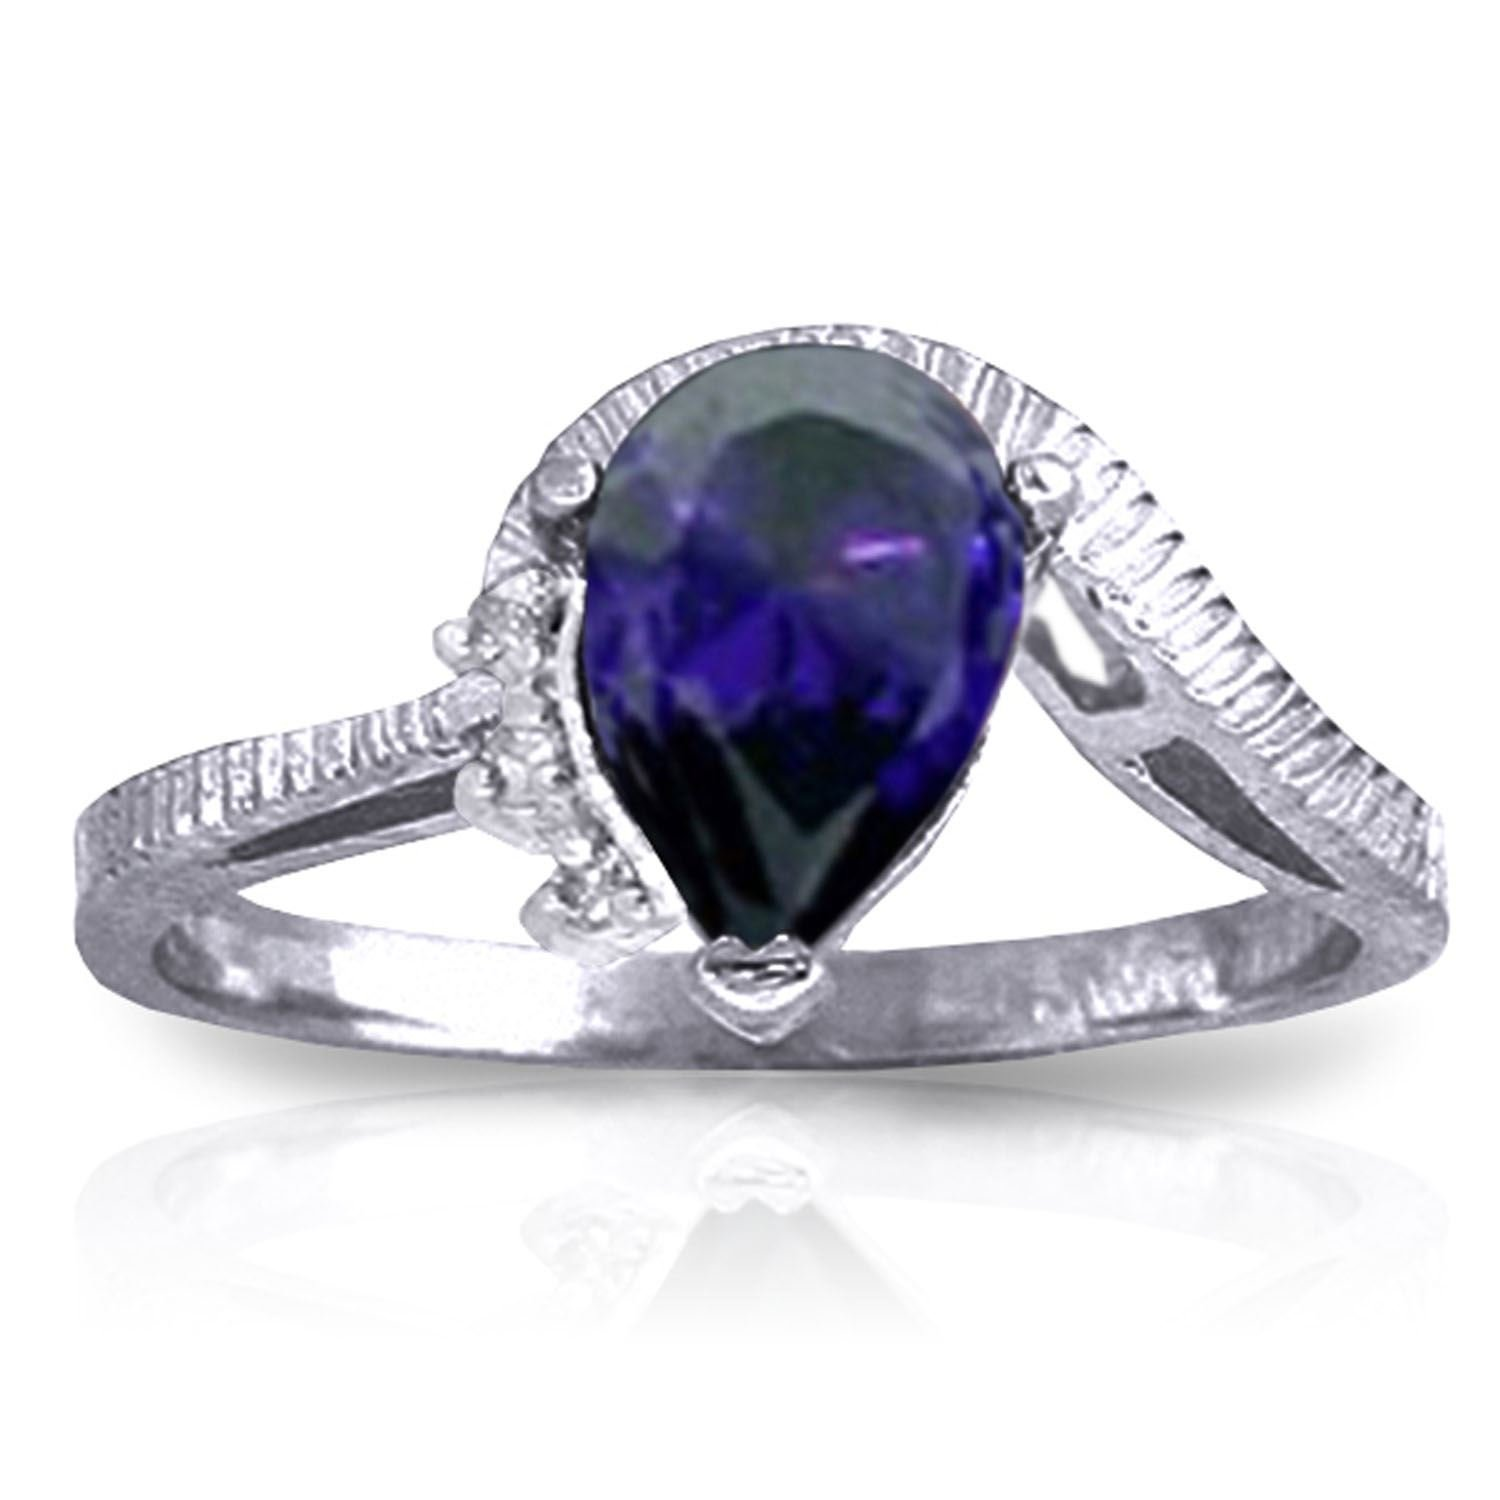 ALARRI 1.52 Carat 14K Solid White Gold Trust In Love Sapphire Diamond Ring With Ring Size 8.5